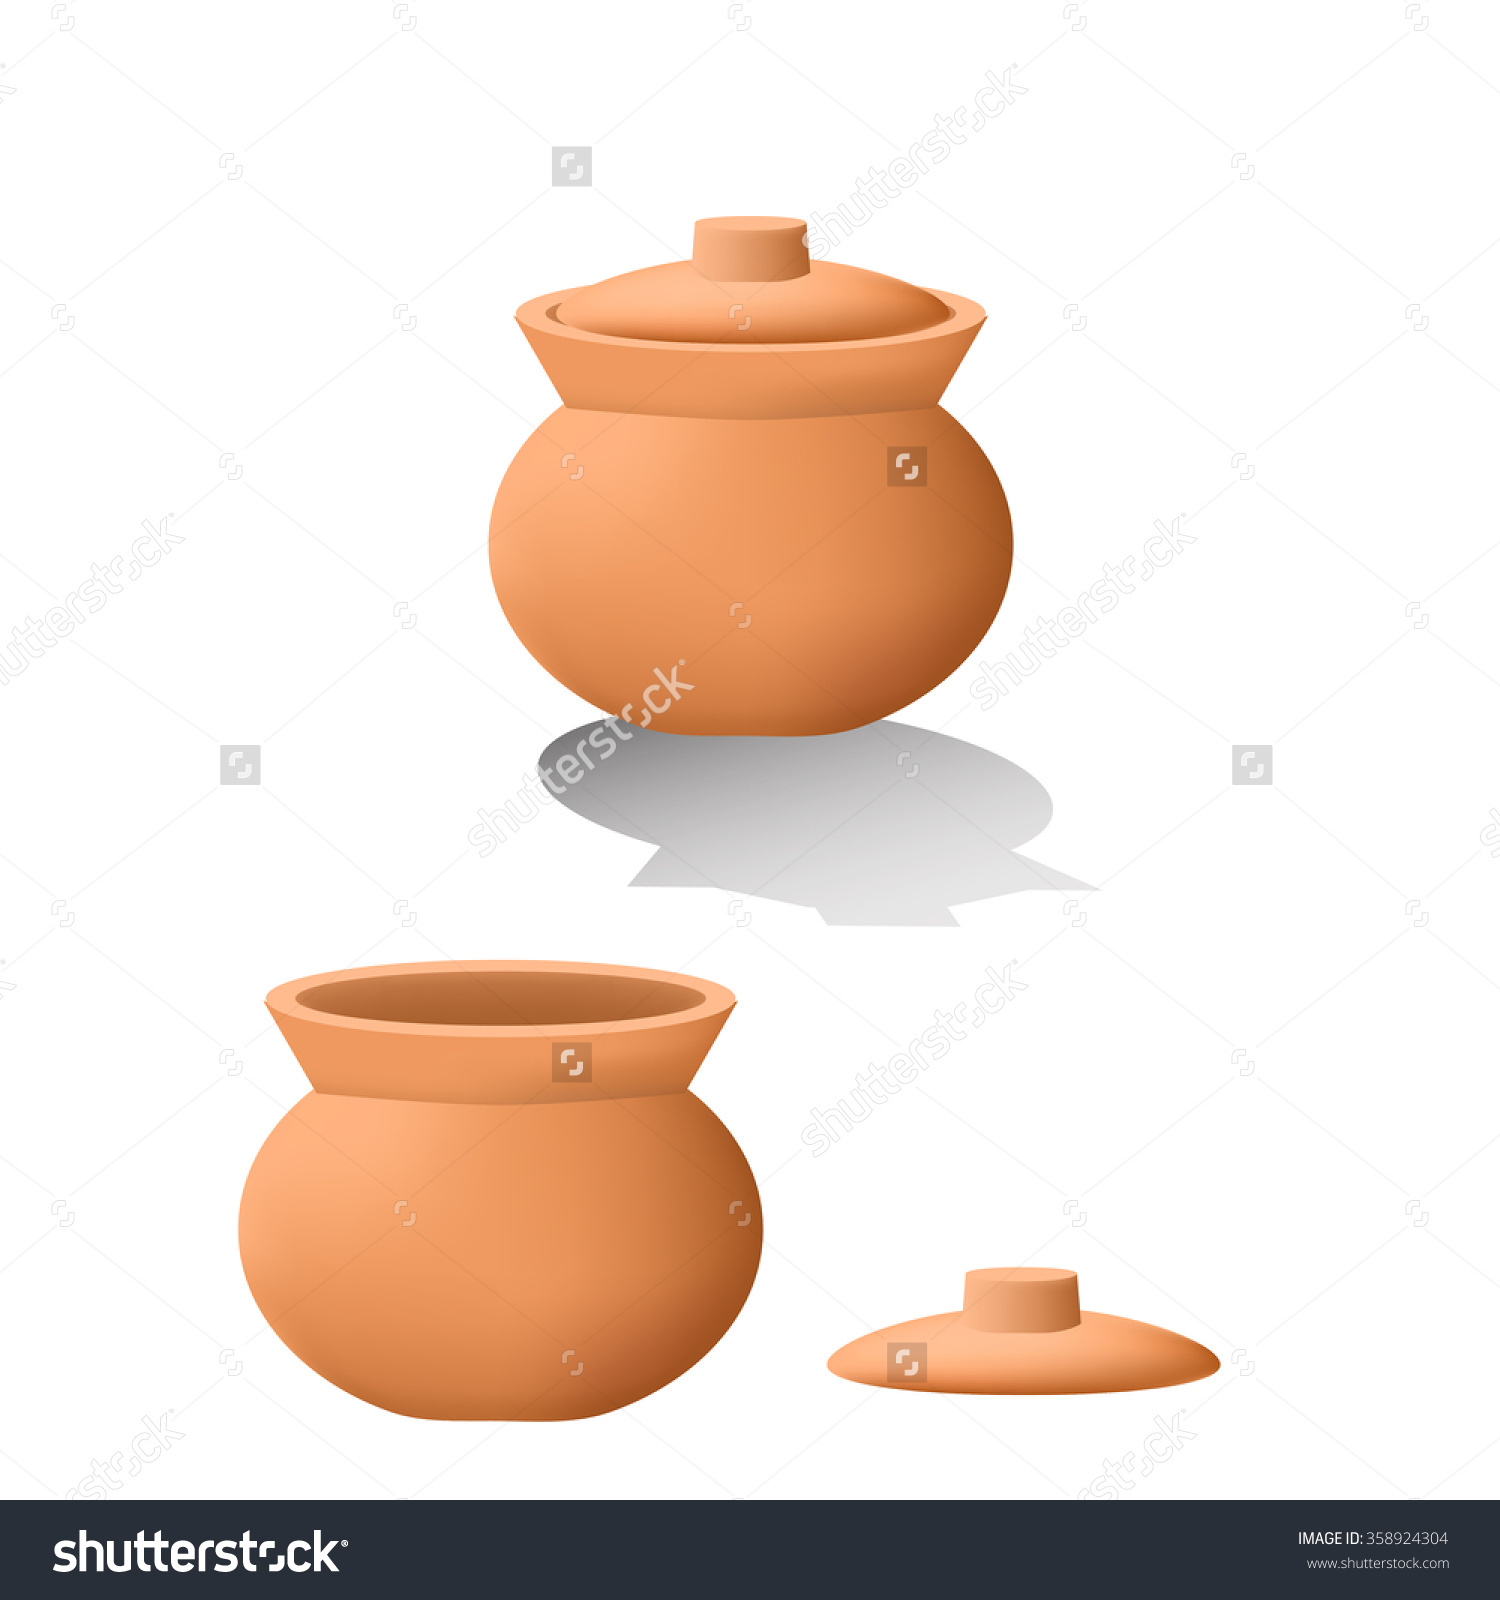 Traditional Asian Clay Pot 3d Mesh Stock Vector 358924304.